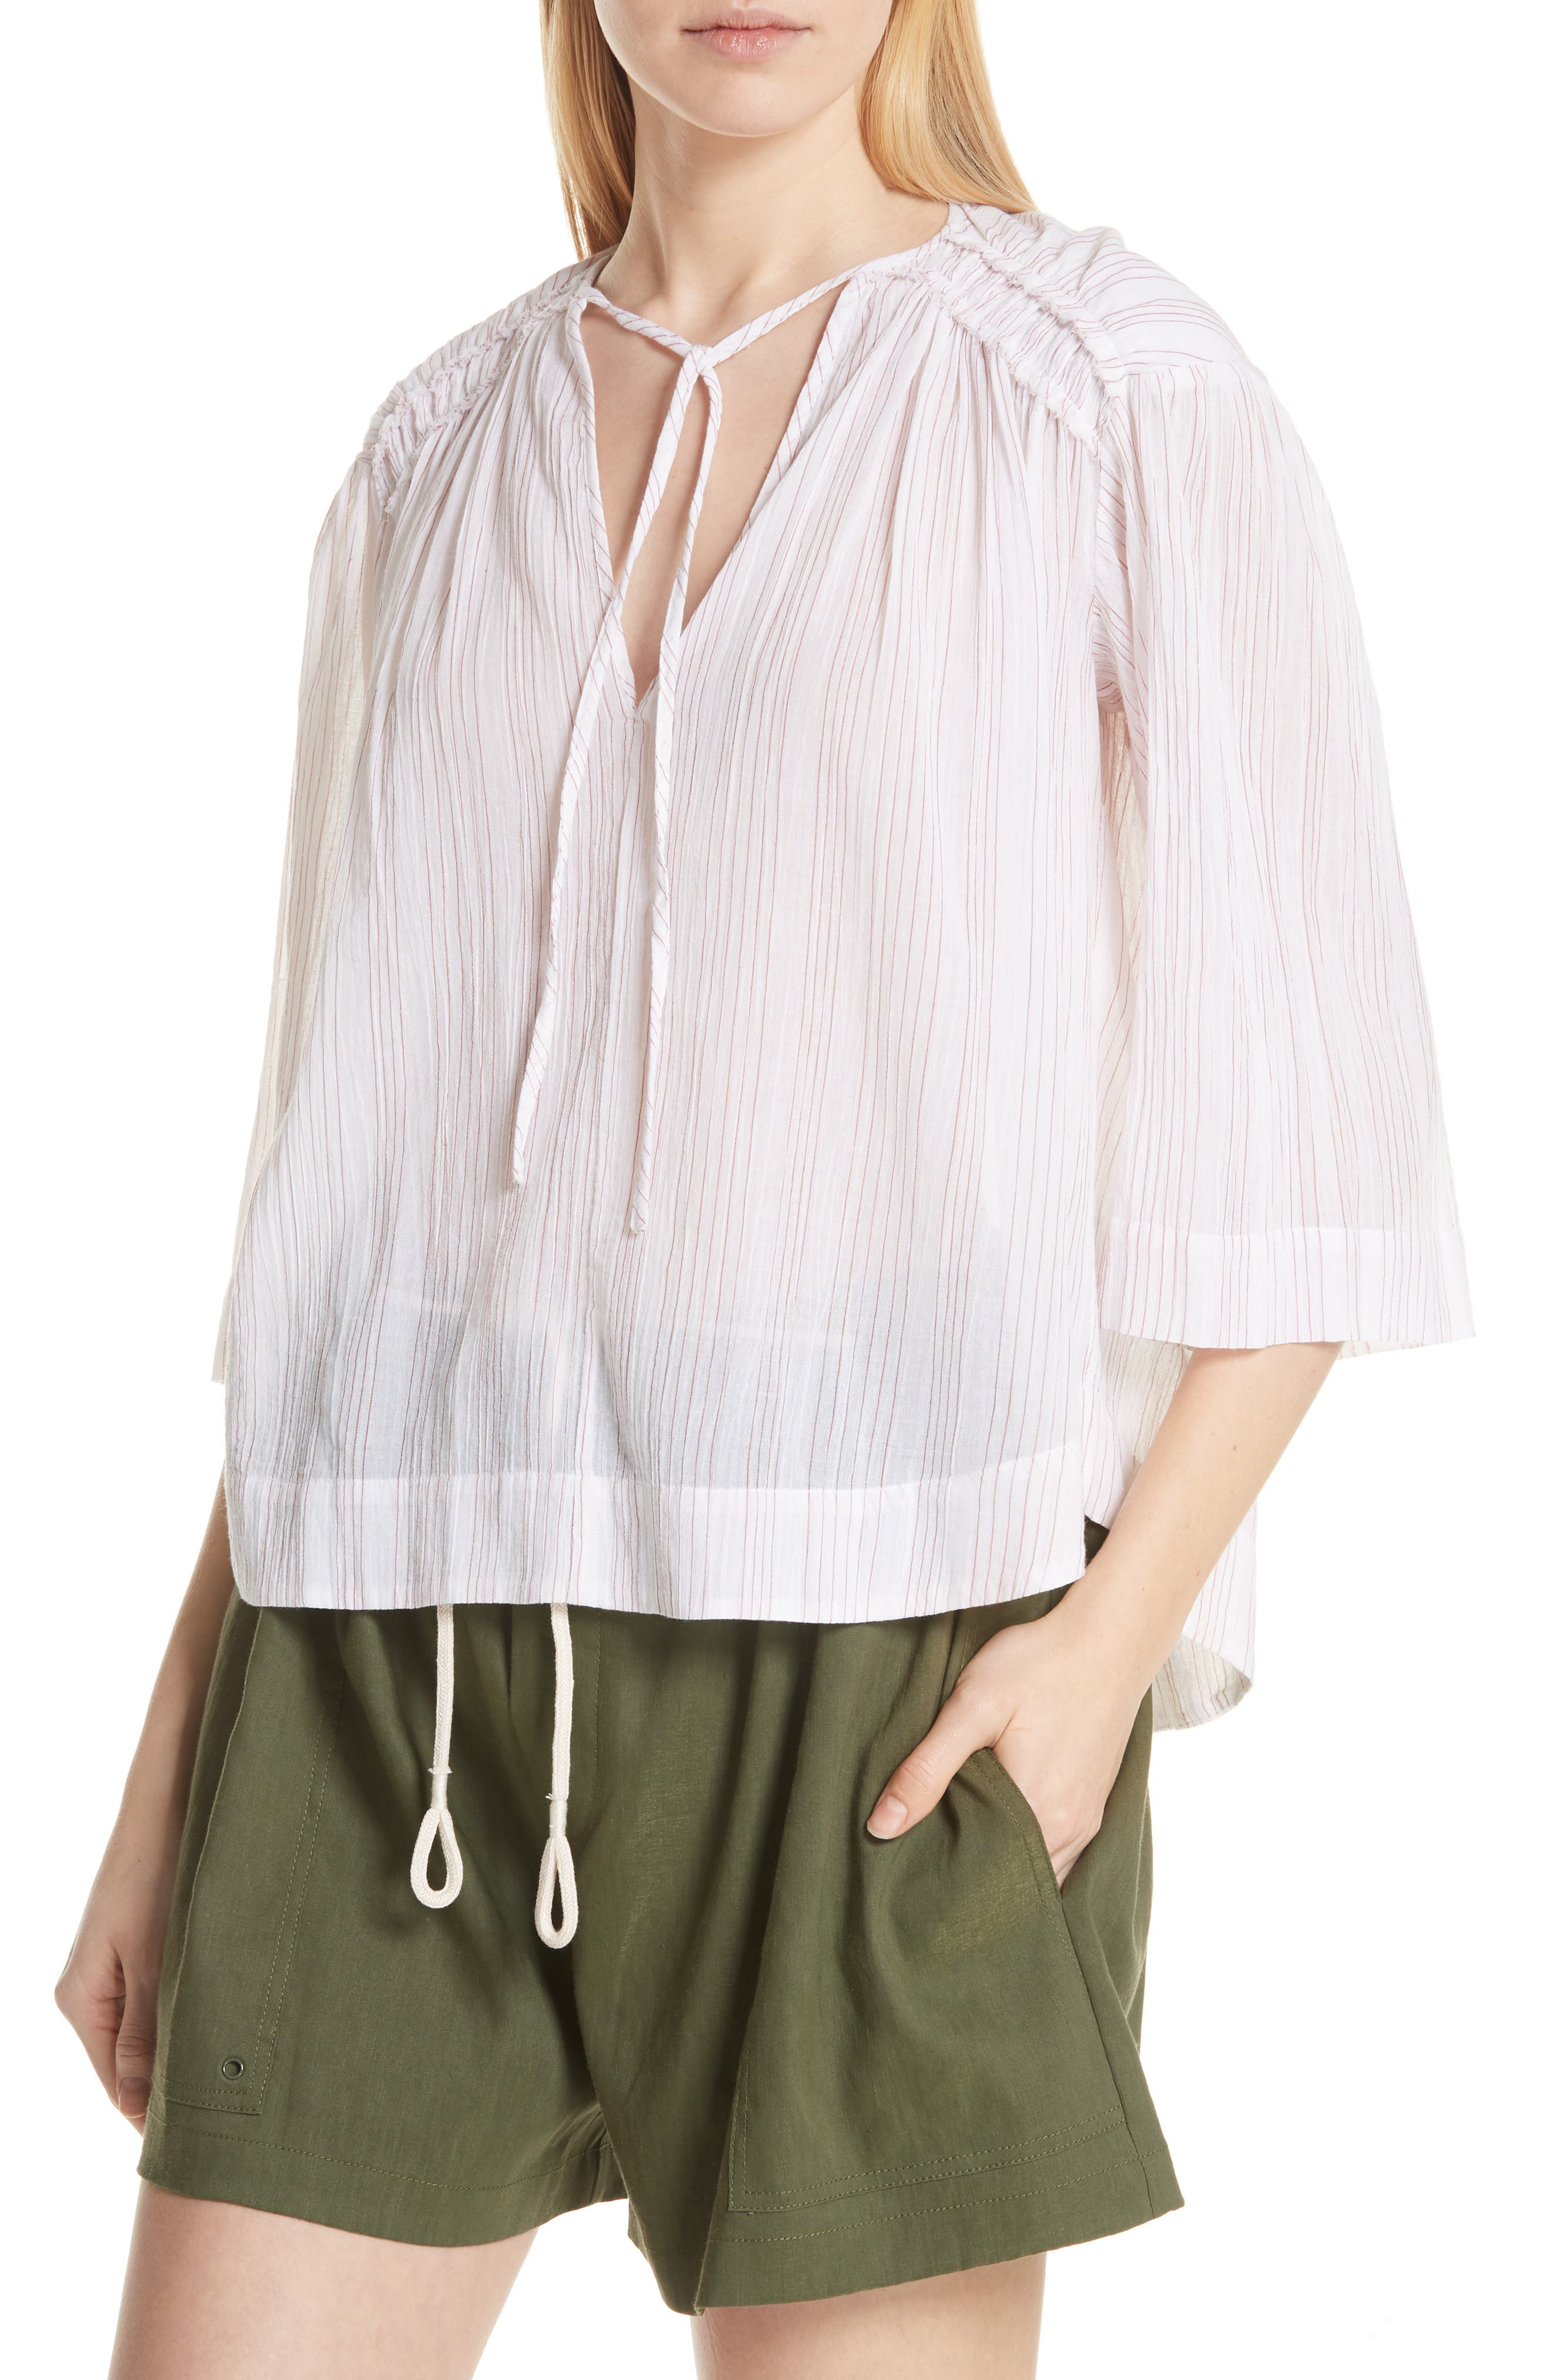 Variegated Stripe Crinkle Cotton Top,                             Alternate thumbnail 4, color,                             Optic White/ Rosewood